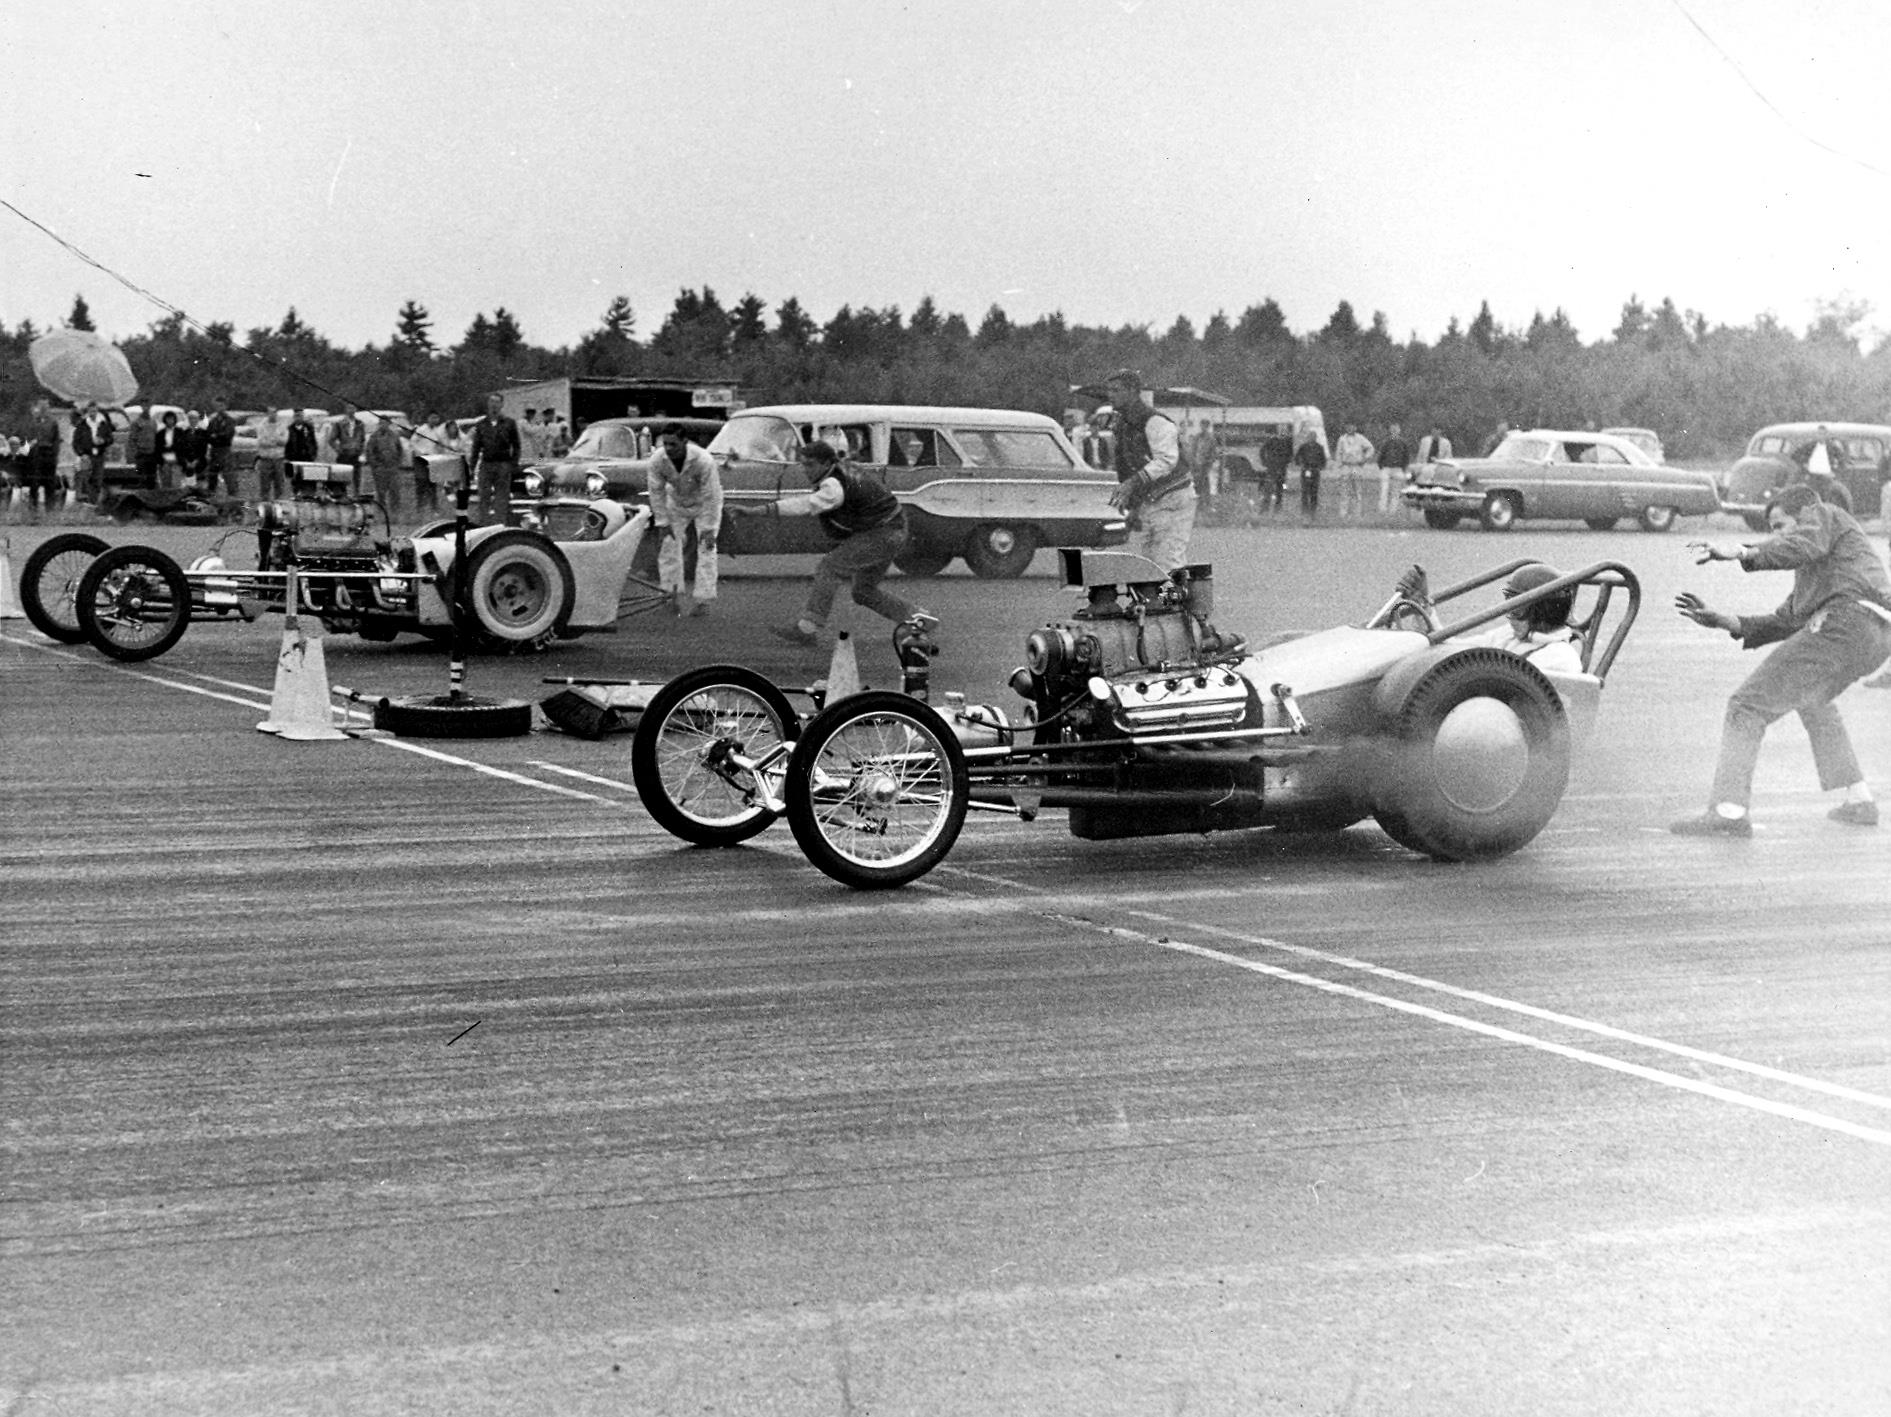 Bitchin' Historic Drag Racing Photos From The Golden Age Of Action At Sanford, Maine